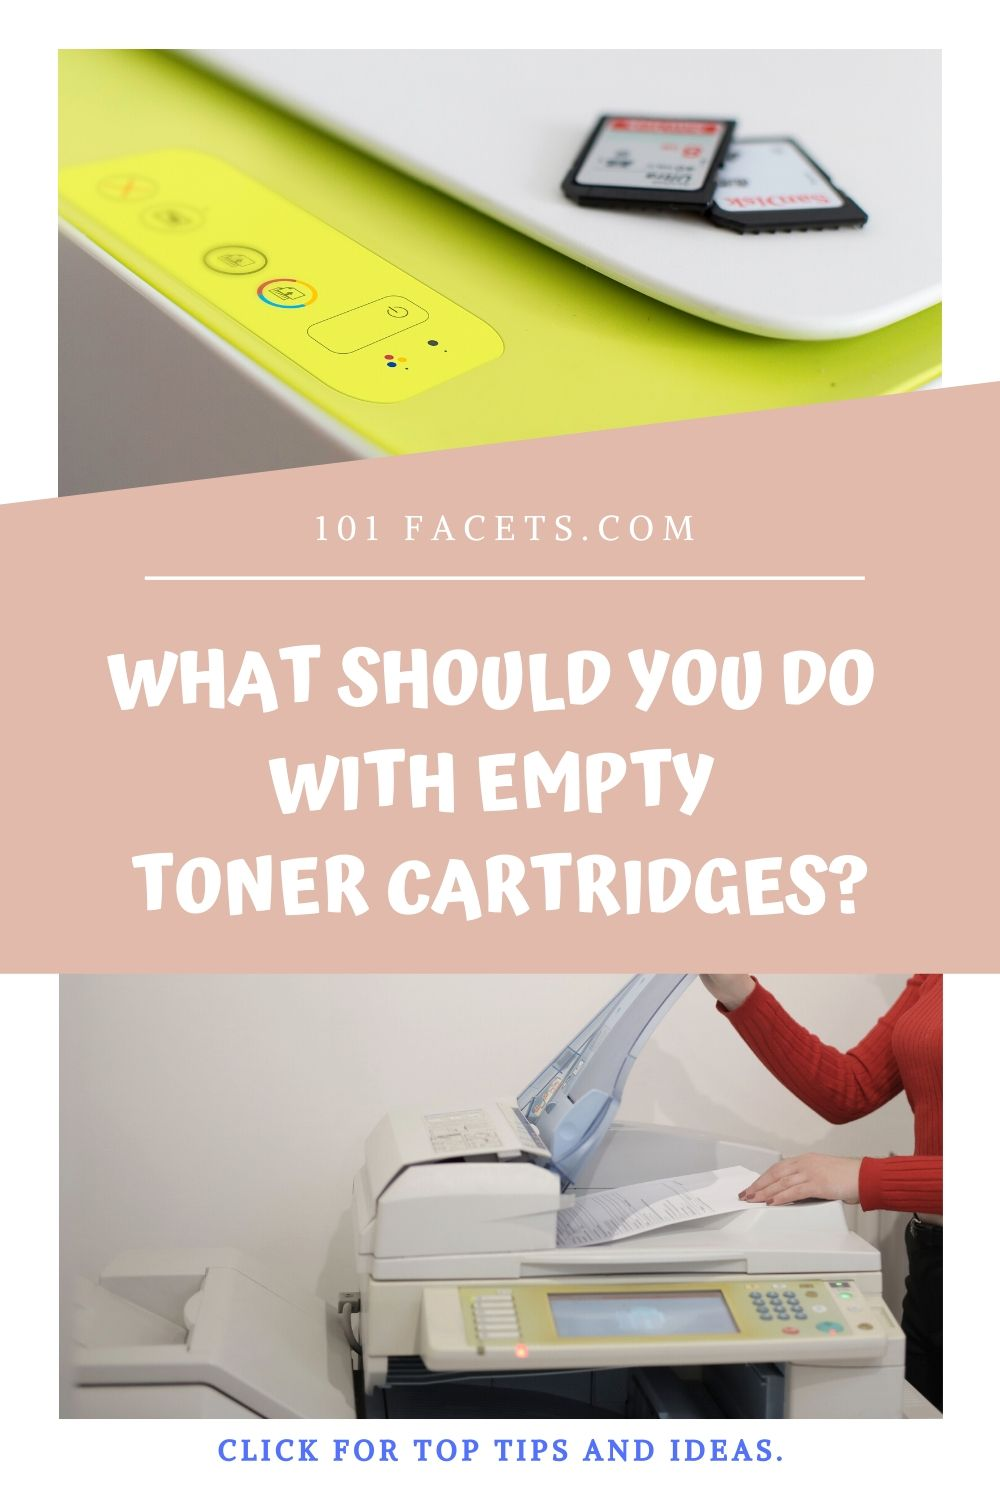 What Should You Do with Empty Toner Cartridges?